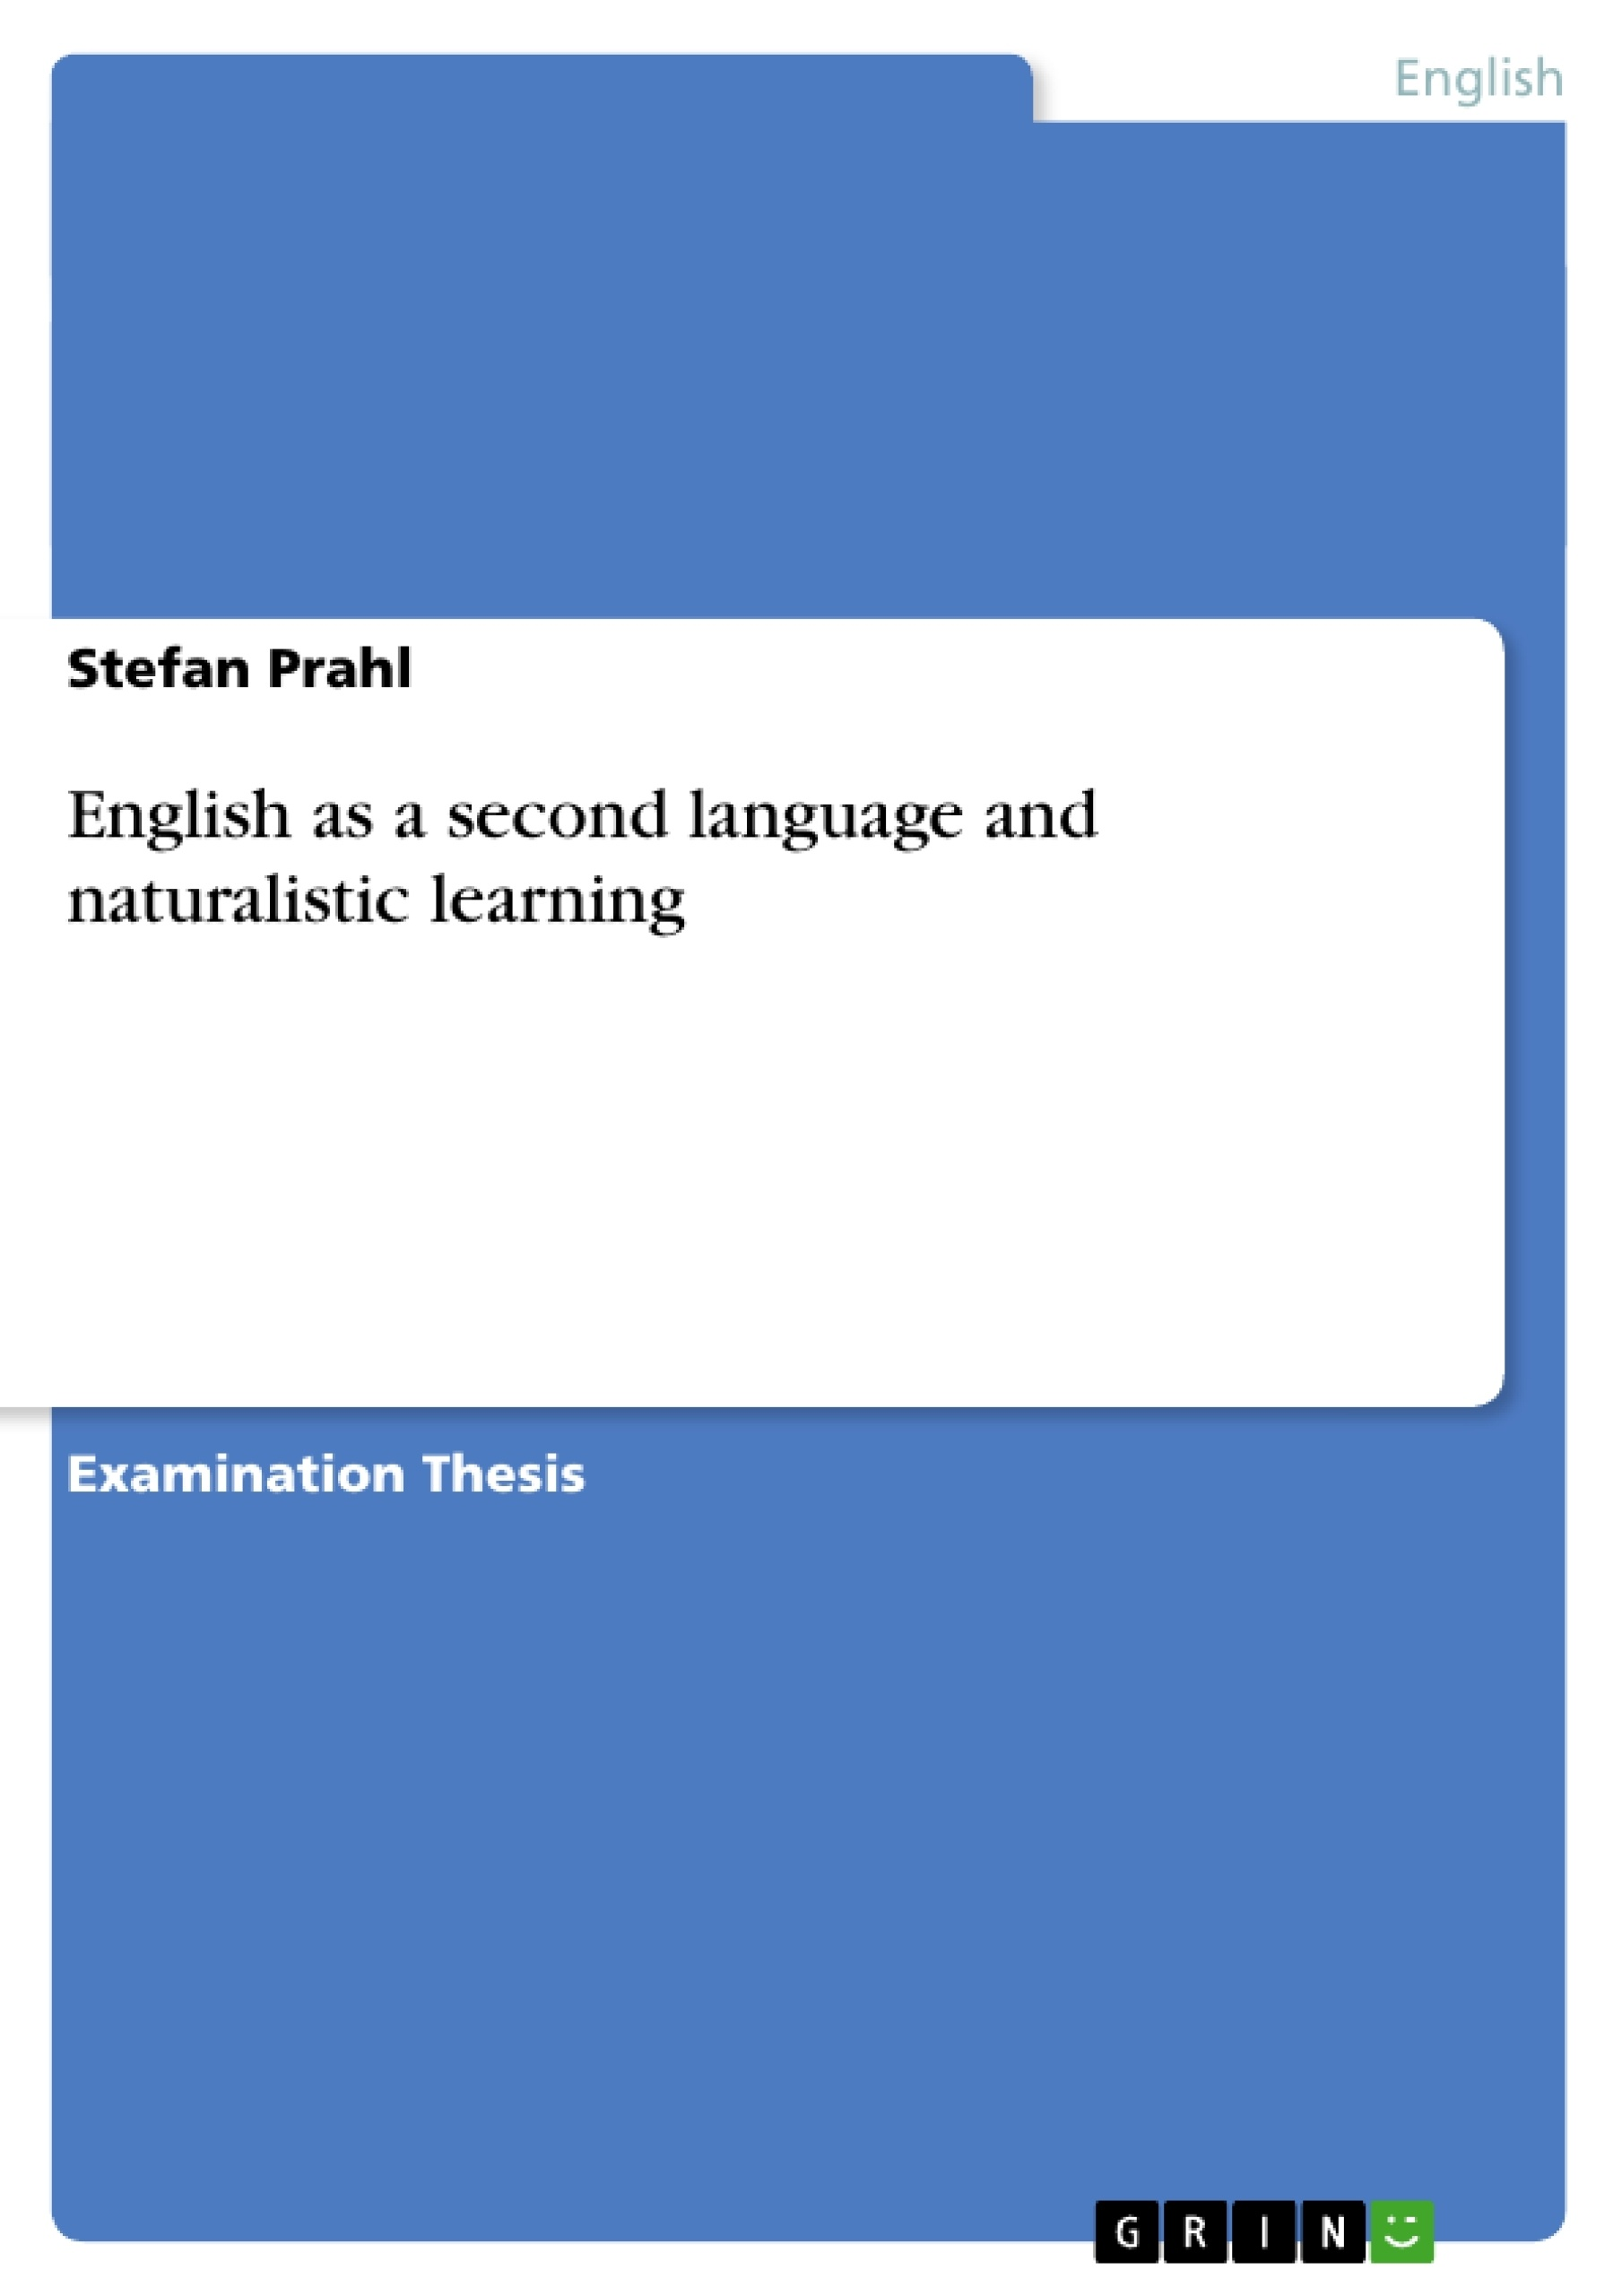 Title: English as a second language and naturalistic learning